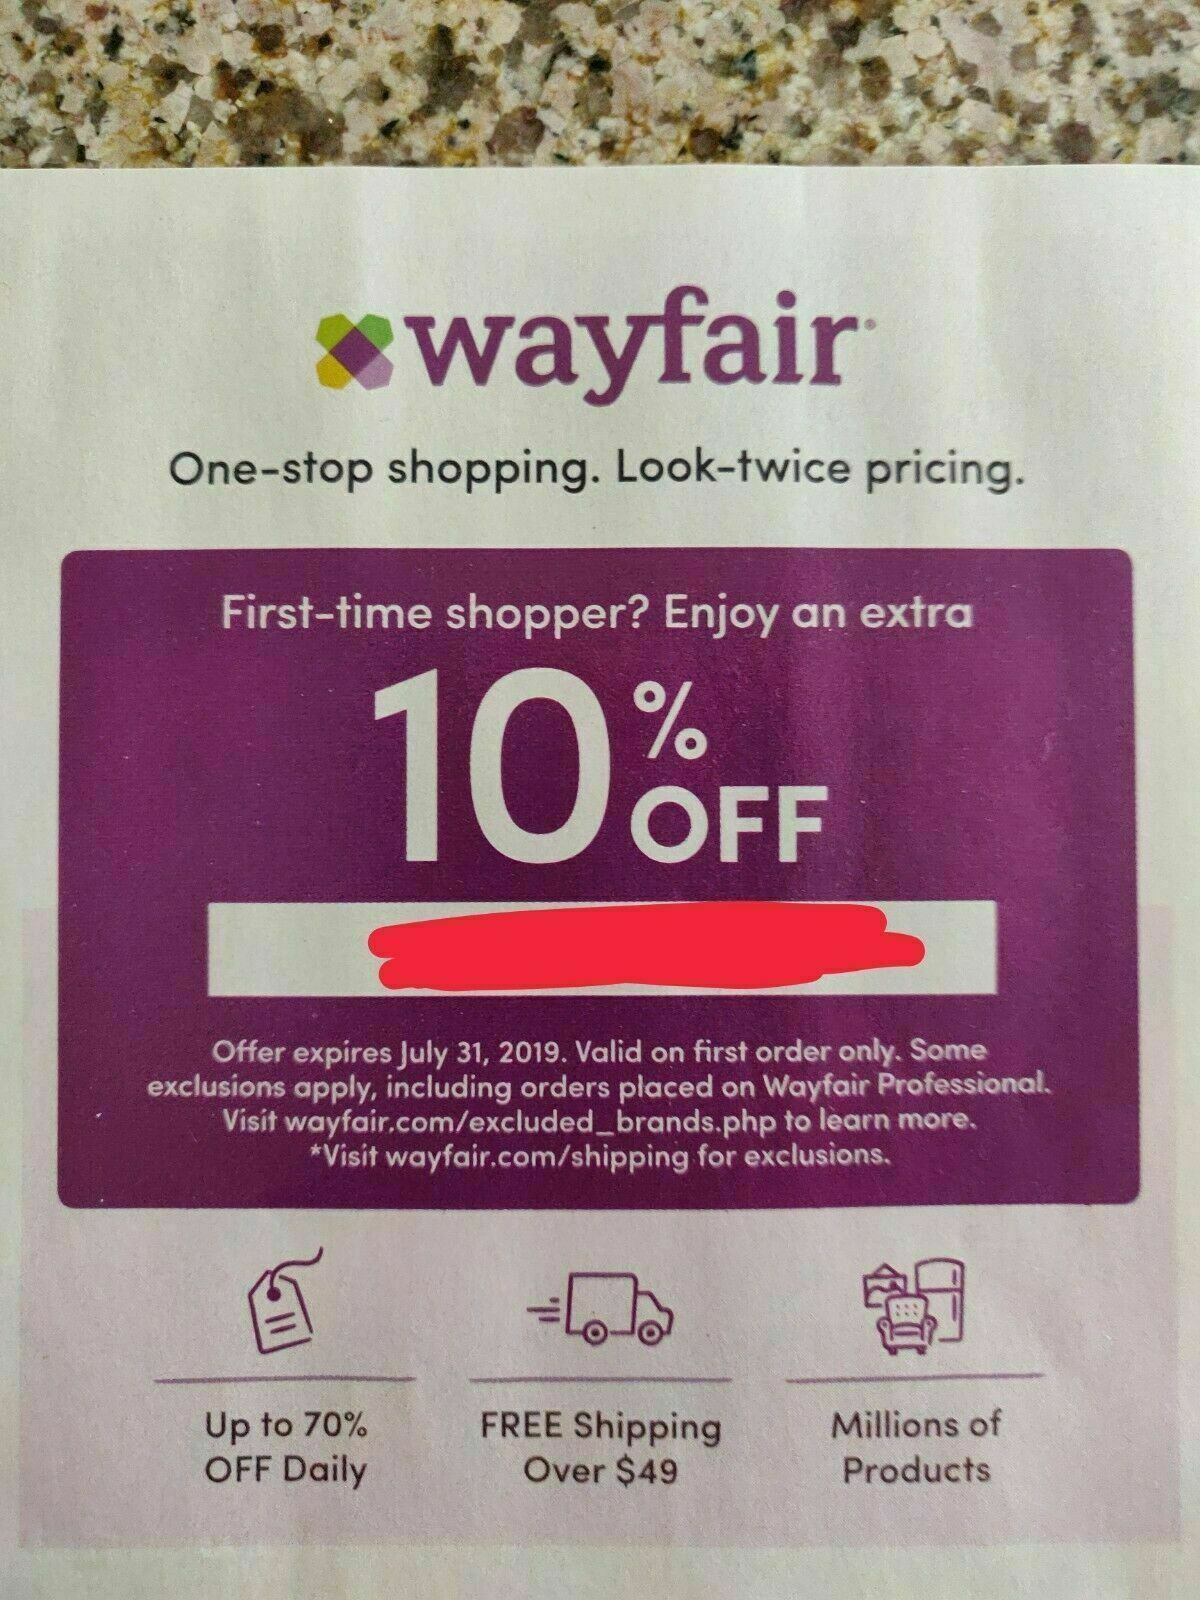 Wayfair Coupon 10 Off - First Time Shopper - Expires 5/15/21 - $1.99